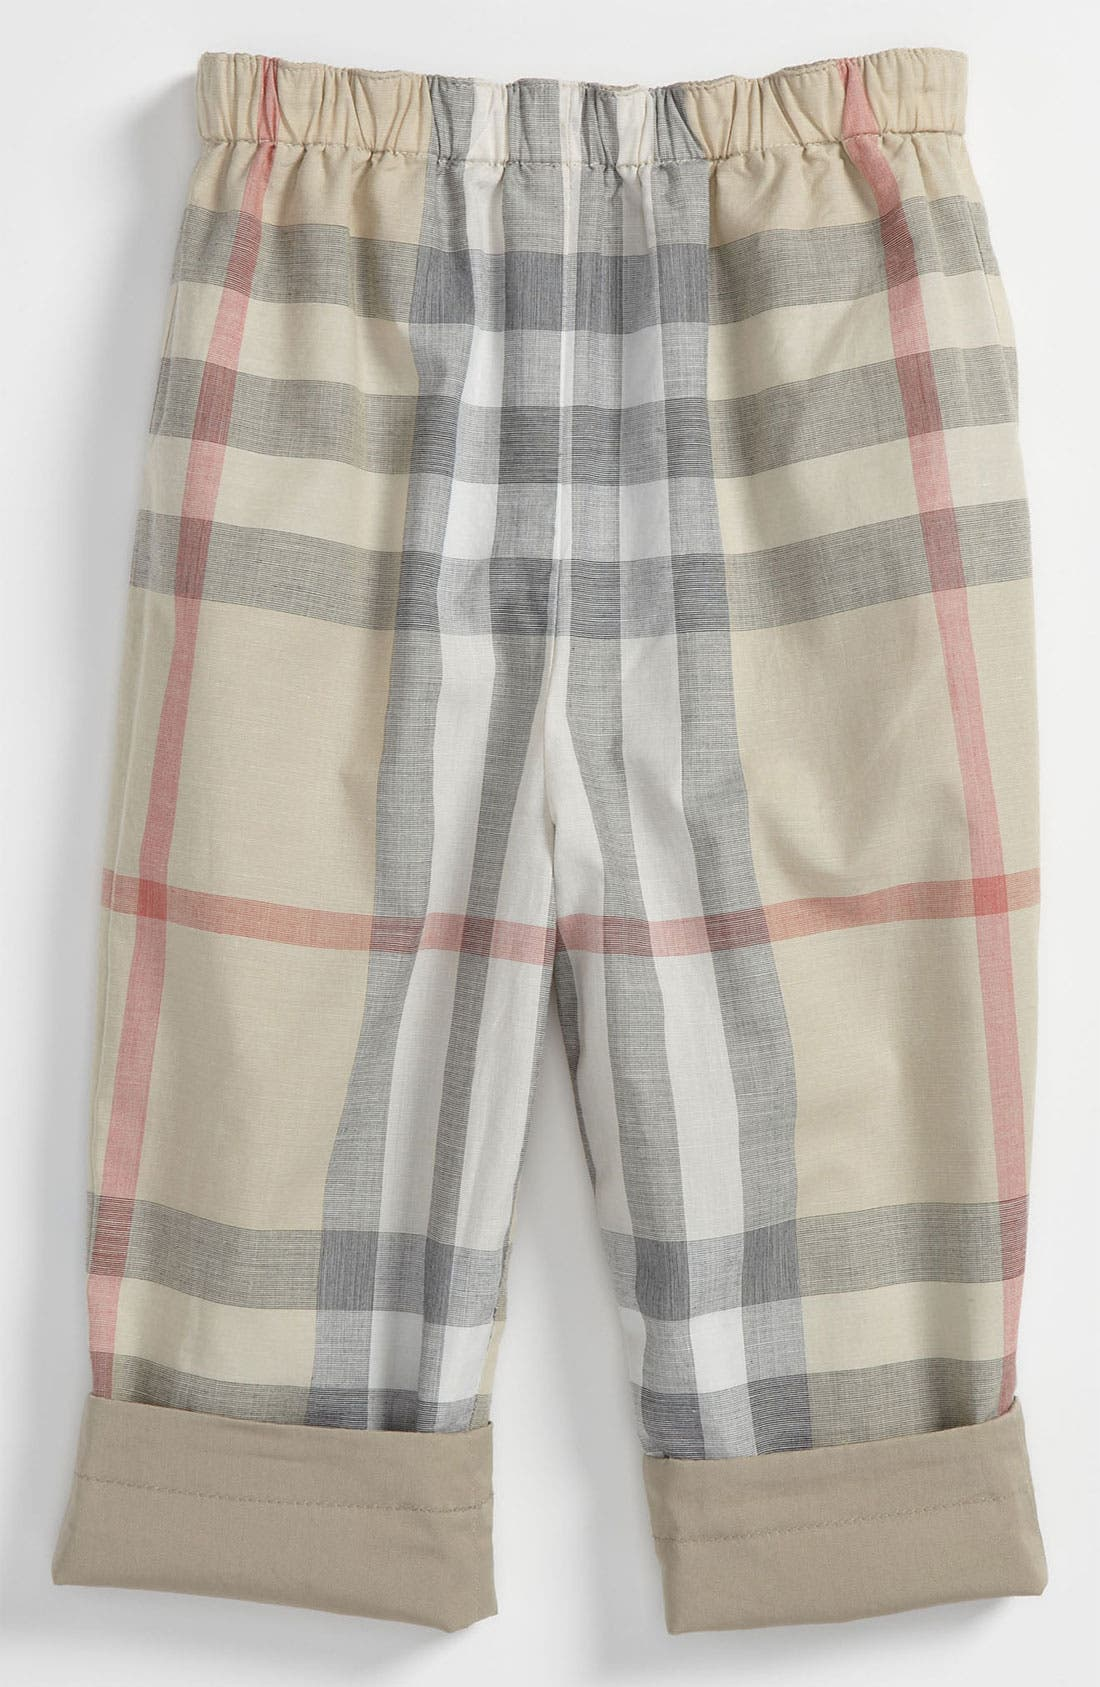 Alternate Image 1 Selected - Burberry 'Darcy' Reversible Trousers (Infant)